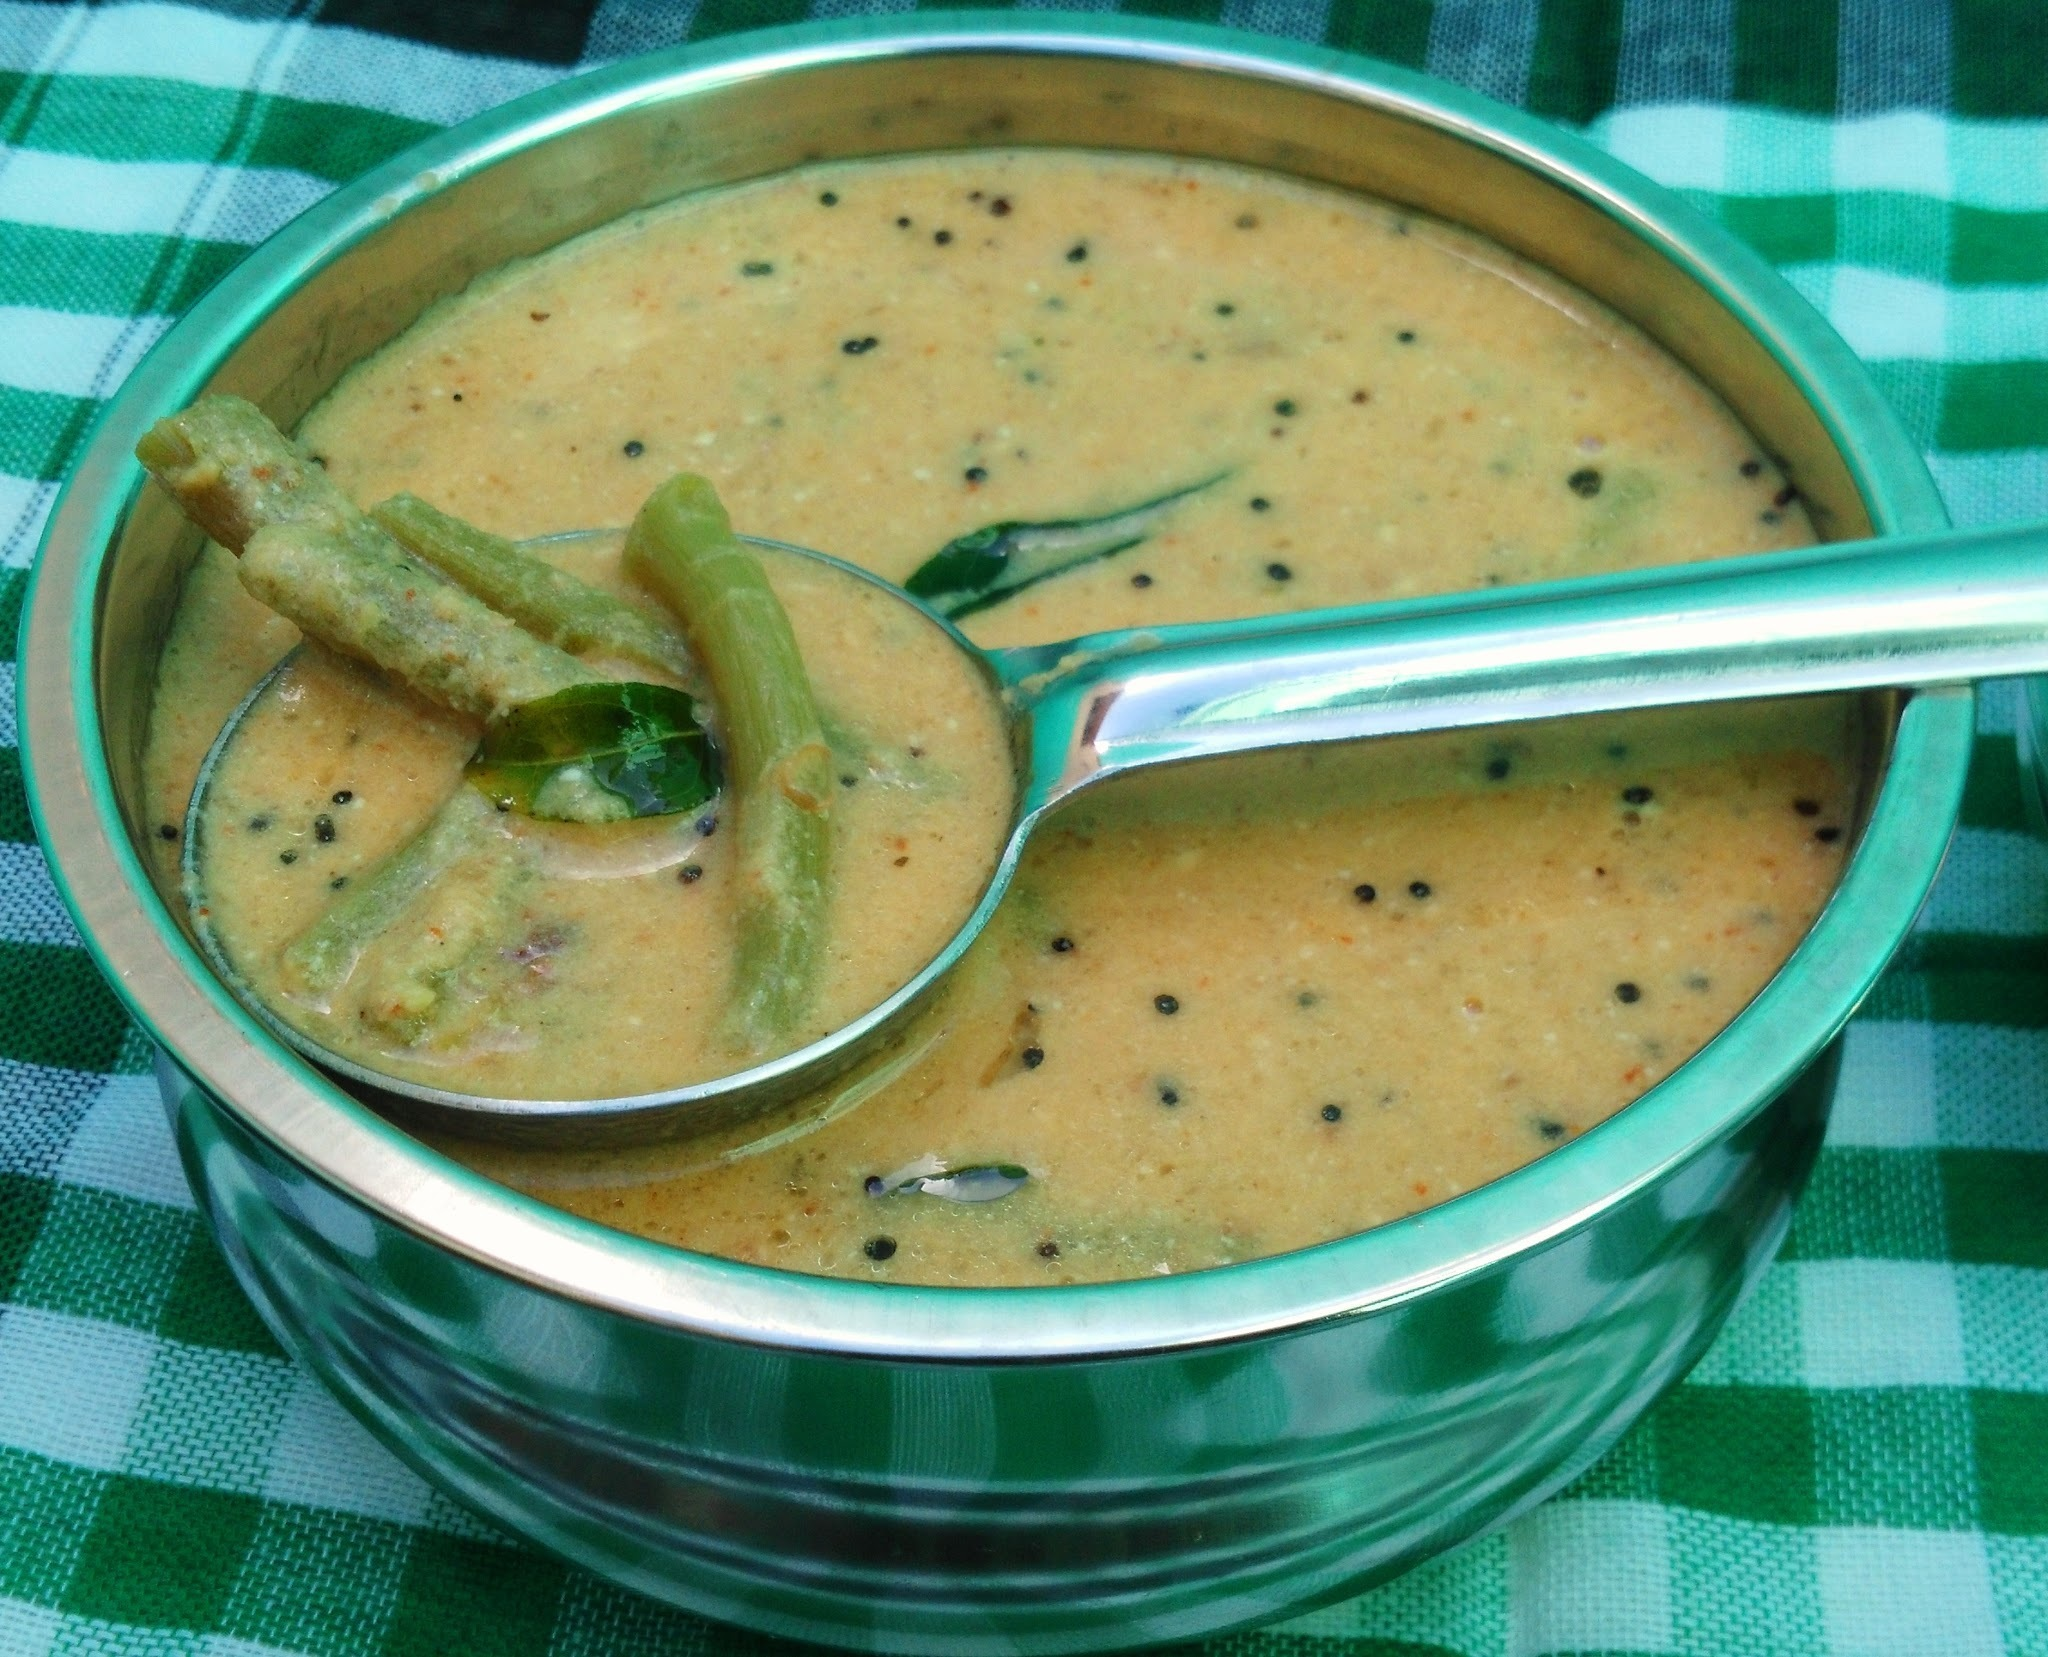 Keerai Thandu Thengai Kuzhambu ( A gravy with the tender stems of Amaranth leaves)